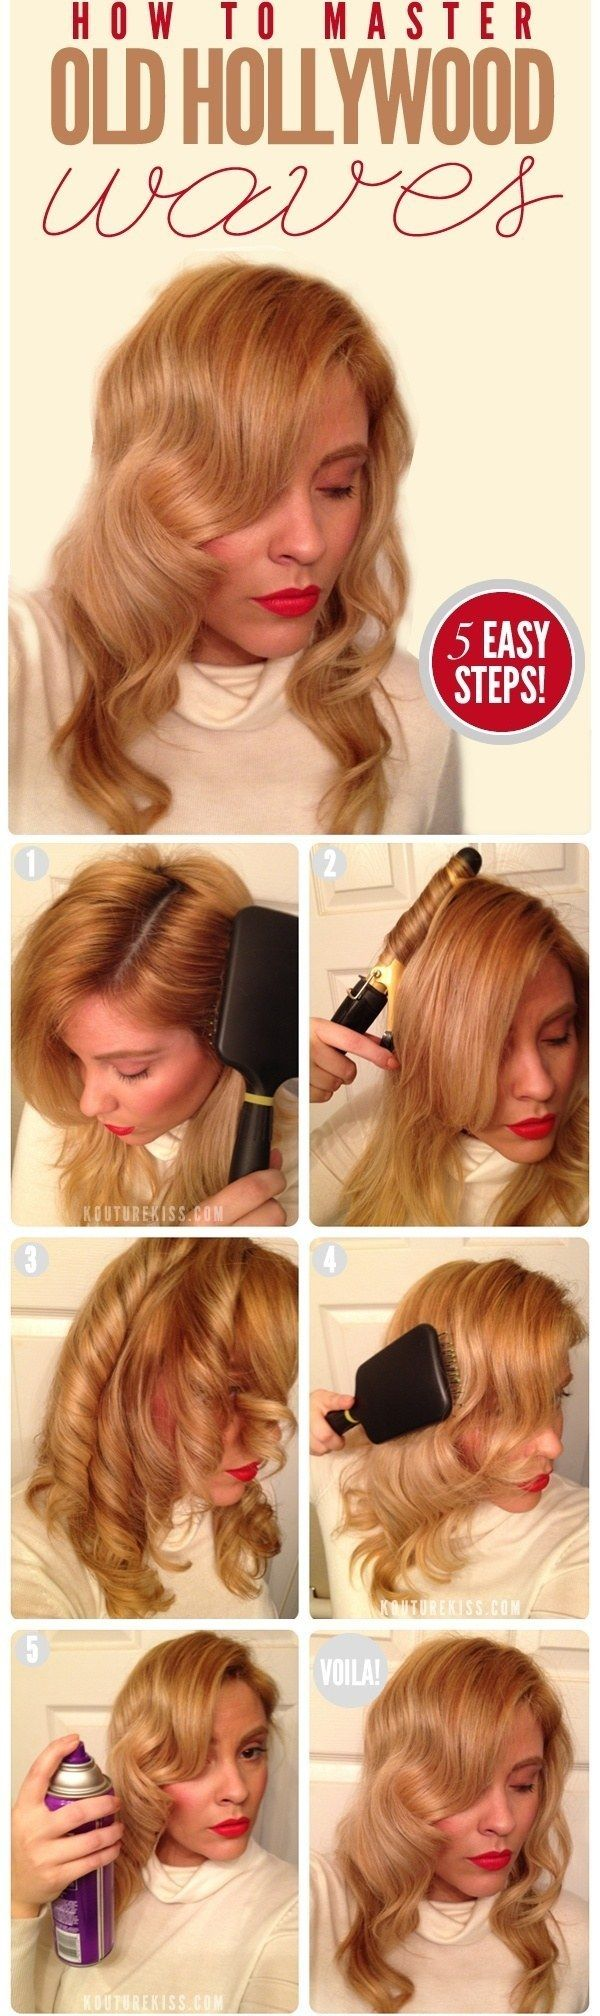 5 easy steps__Vintage Hairstyle Tutorial: Lauren Bacall's Waves